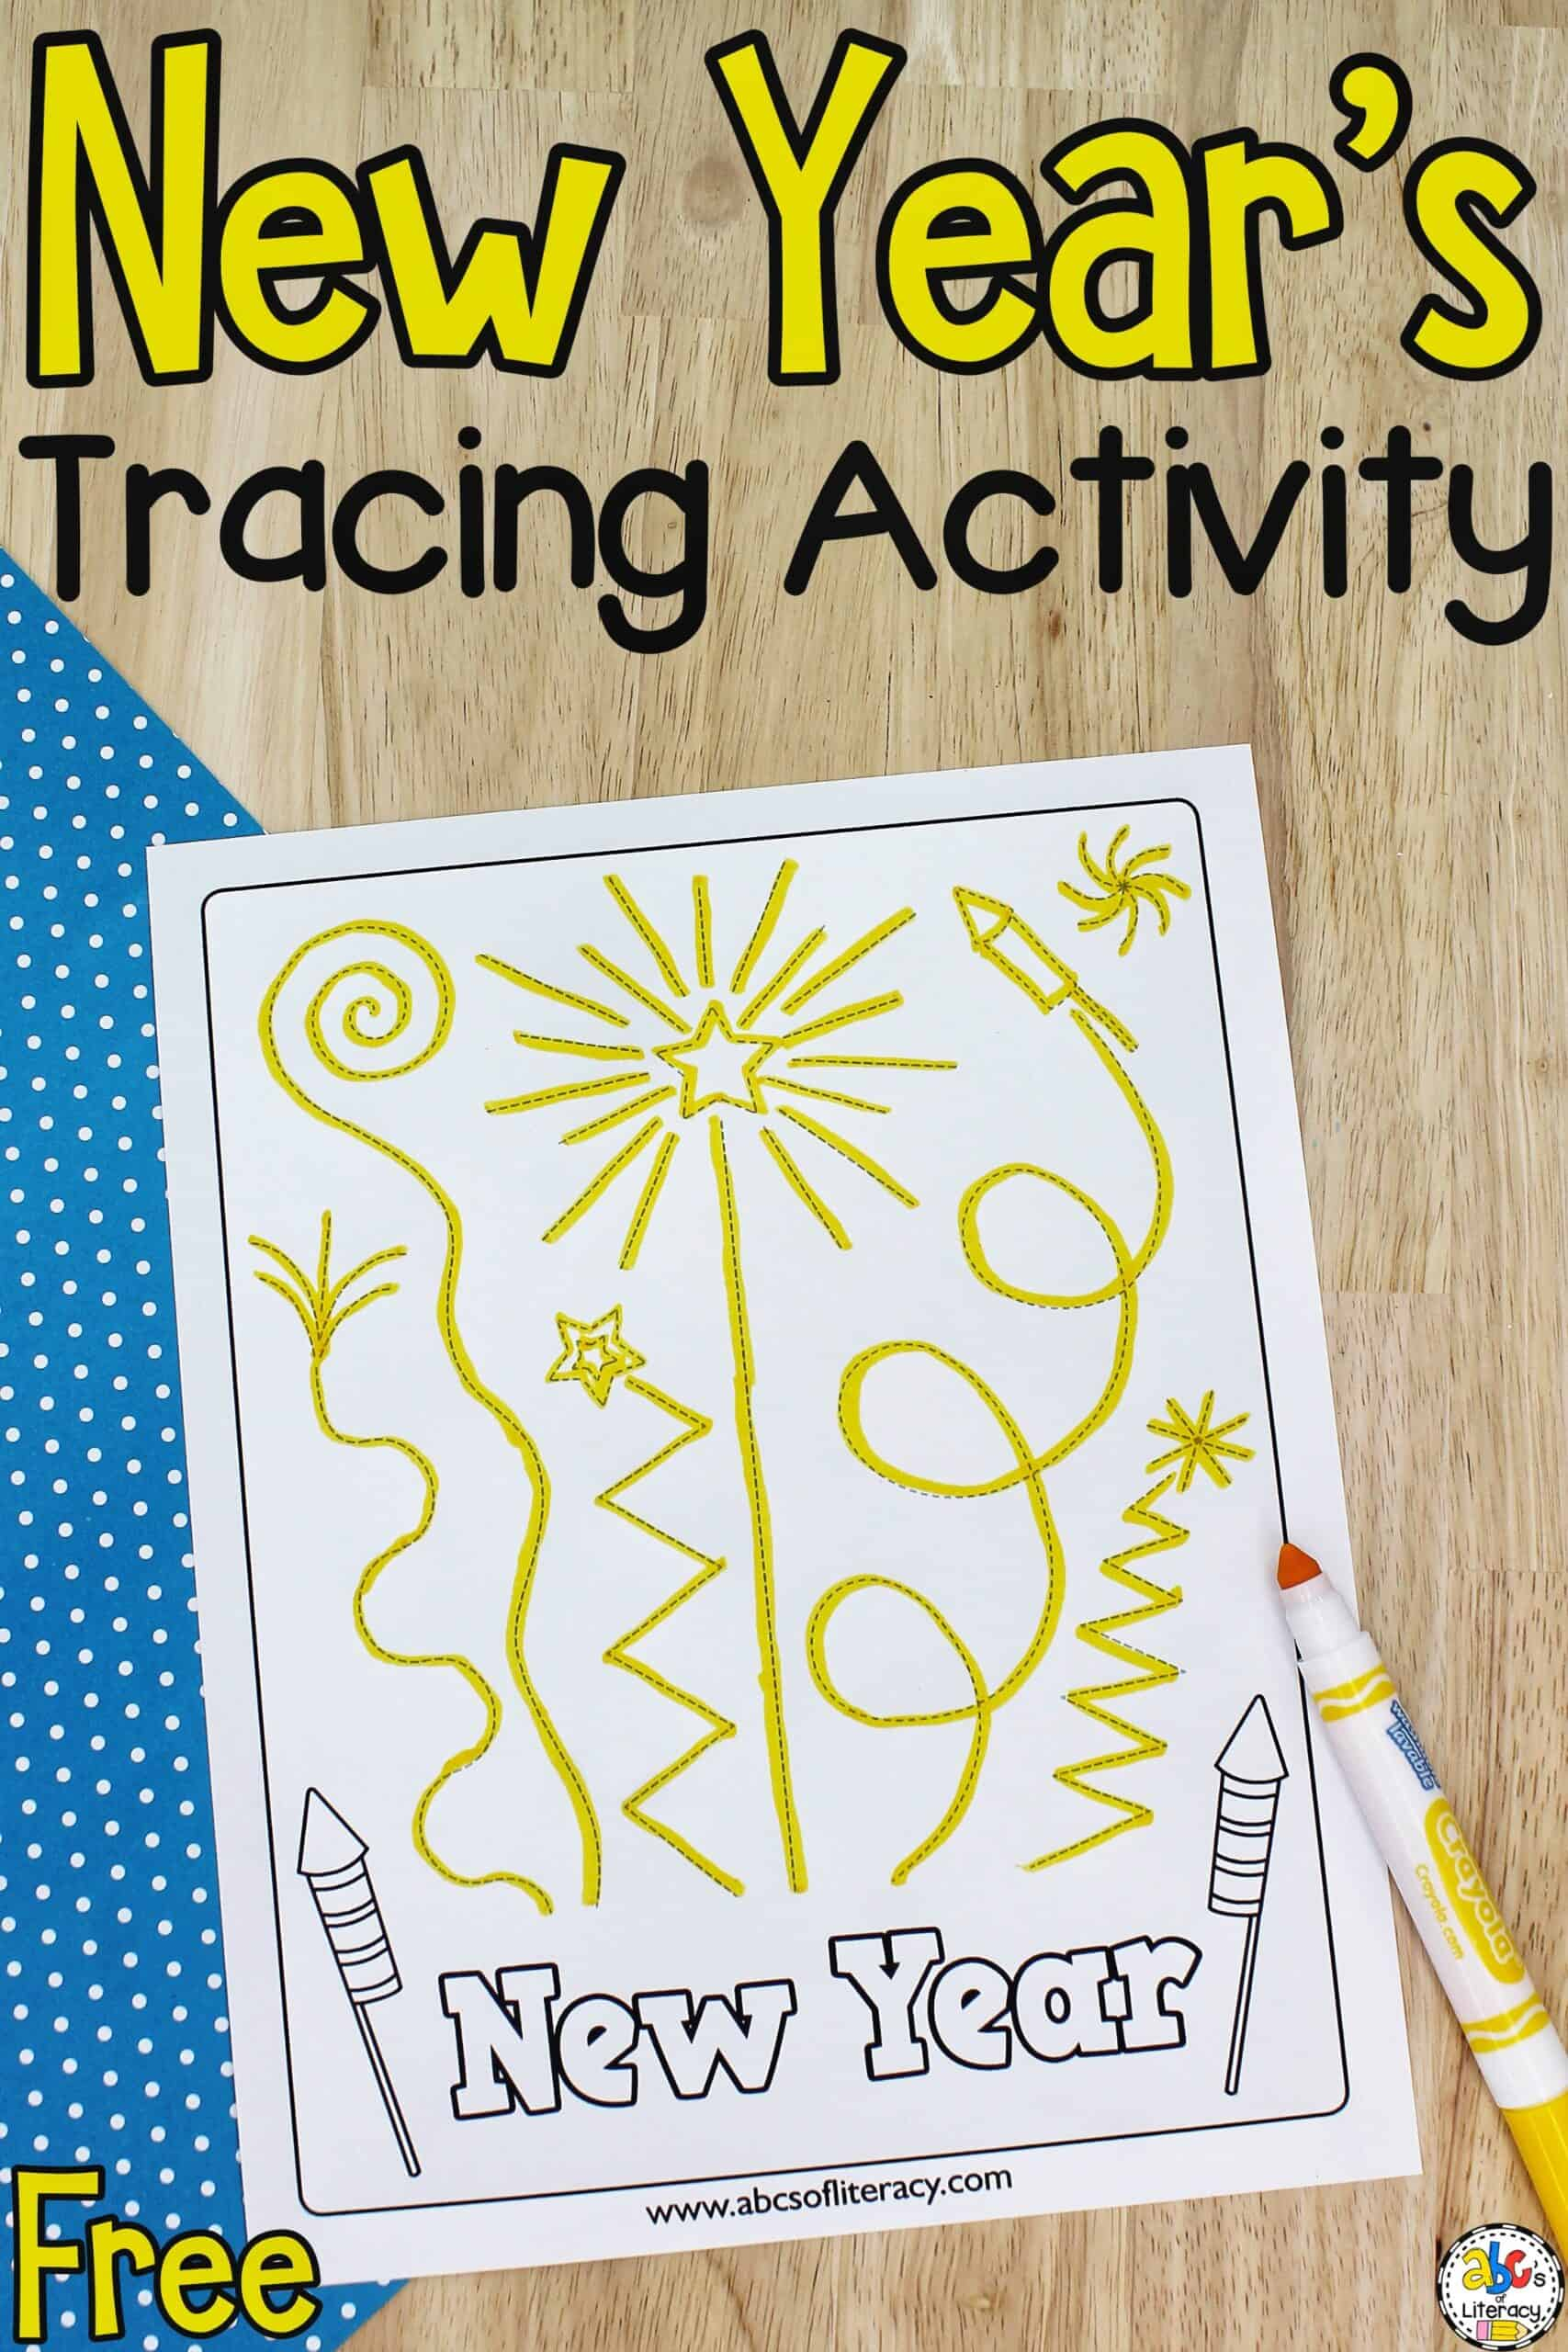 New Year's Tracing Activity